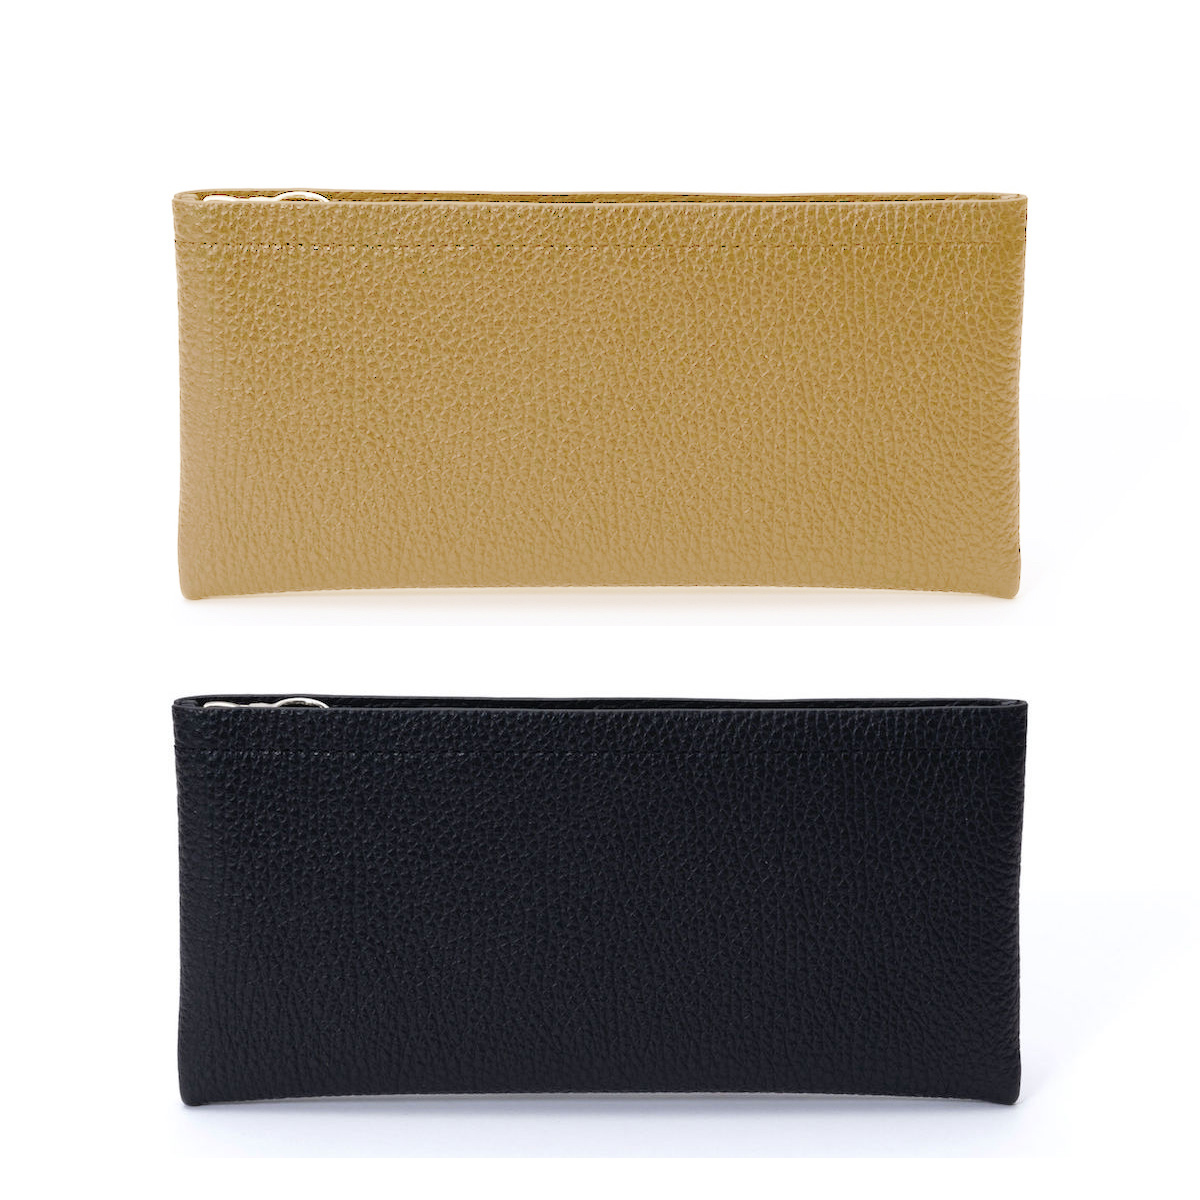 Aeta / PG LEATHER LONG WALLET